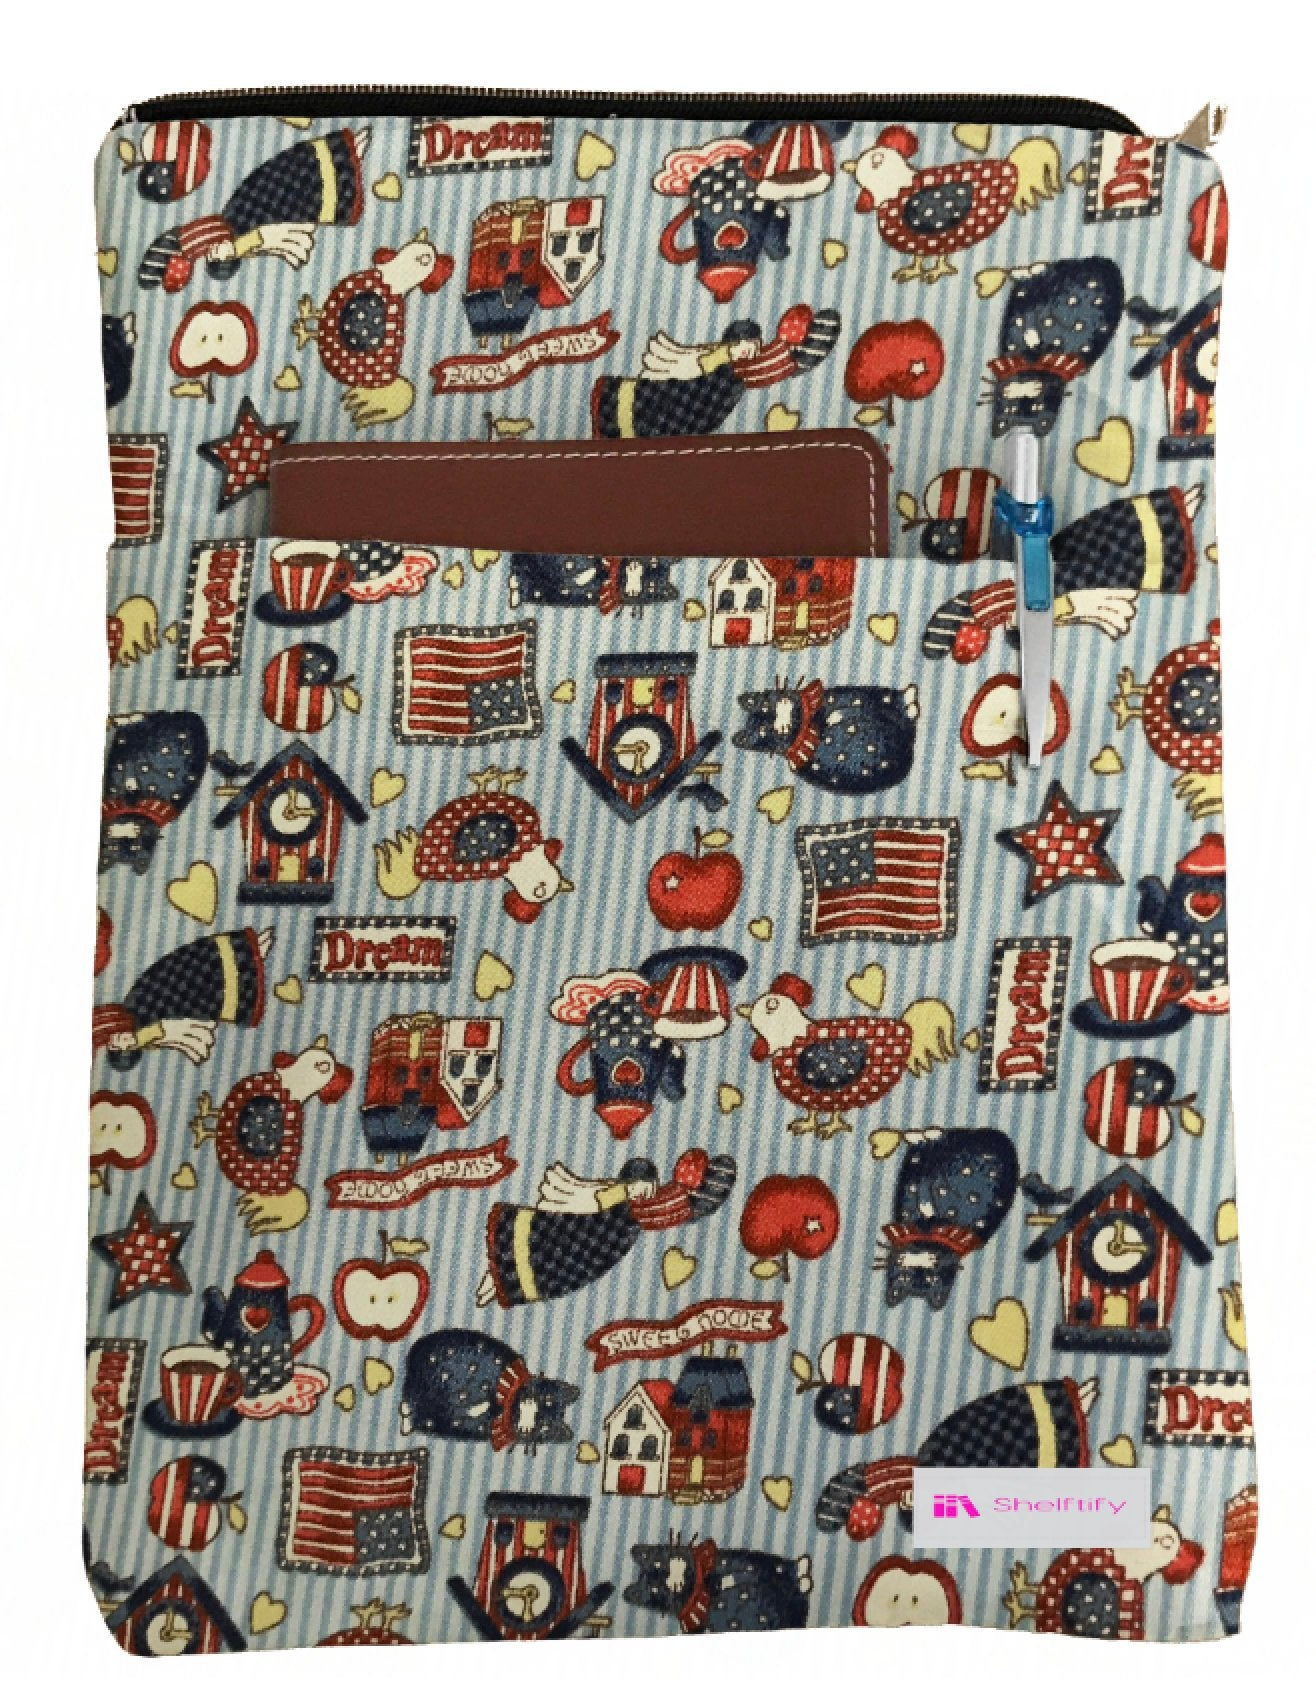 Chicken Book Sleeve - 100% Cotton Fabric